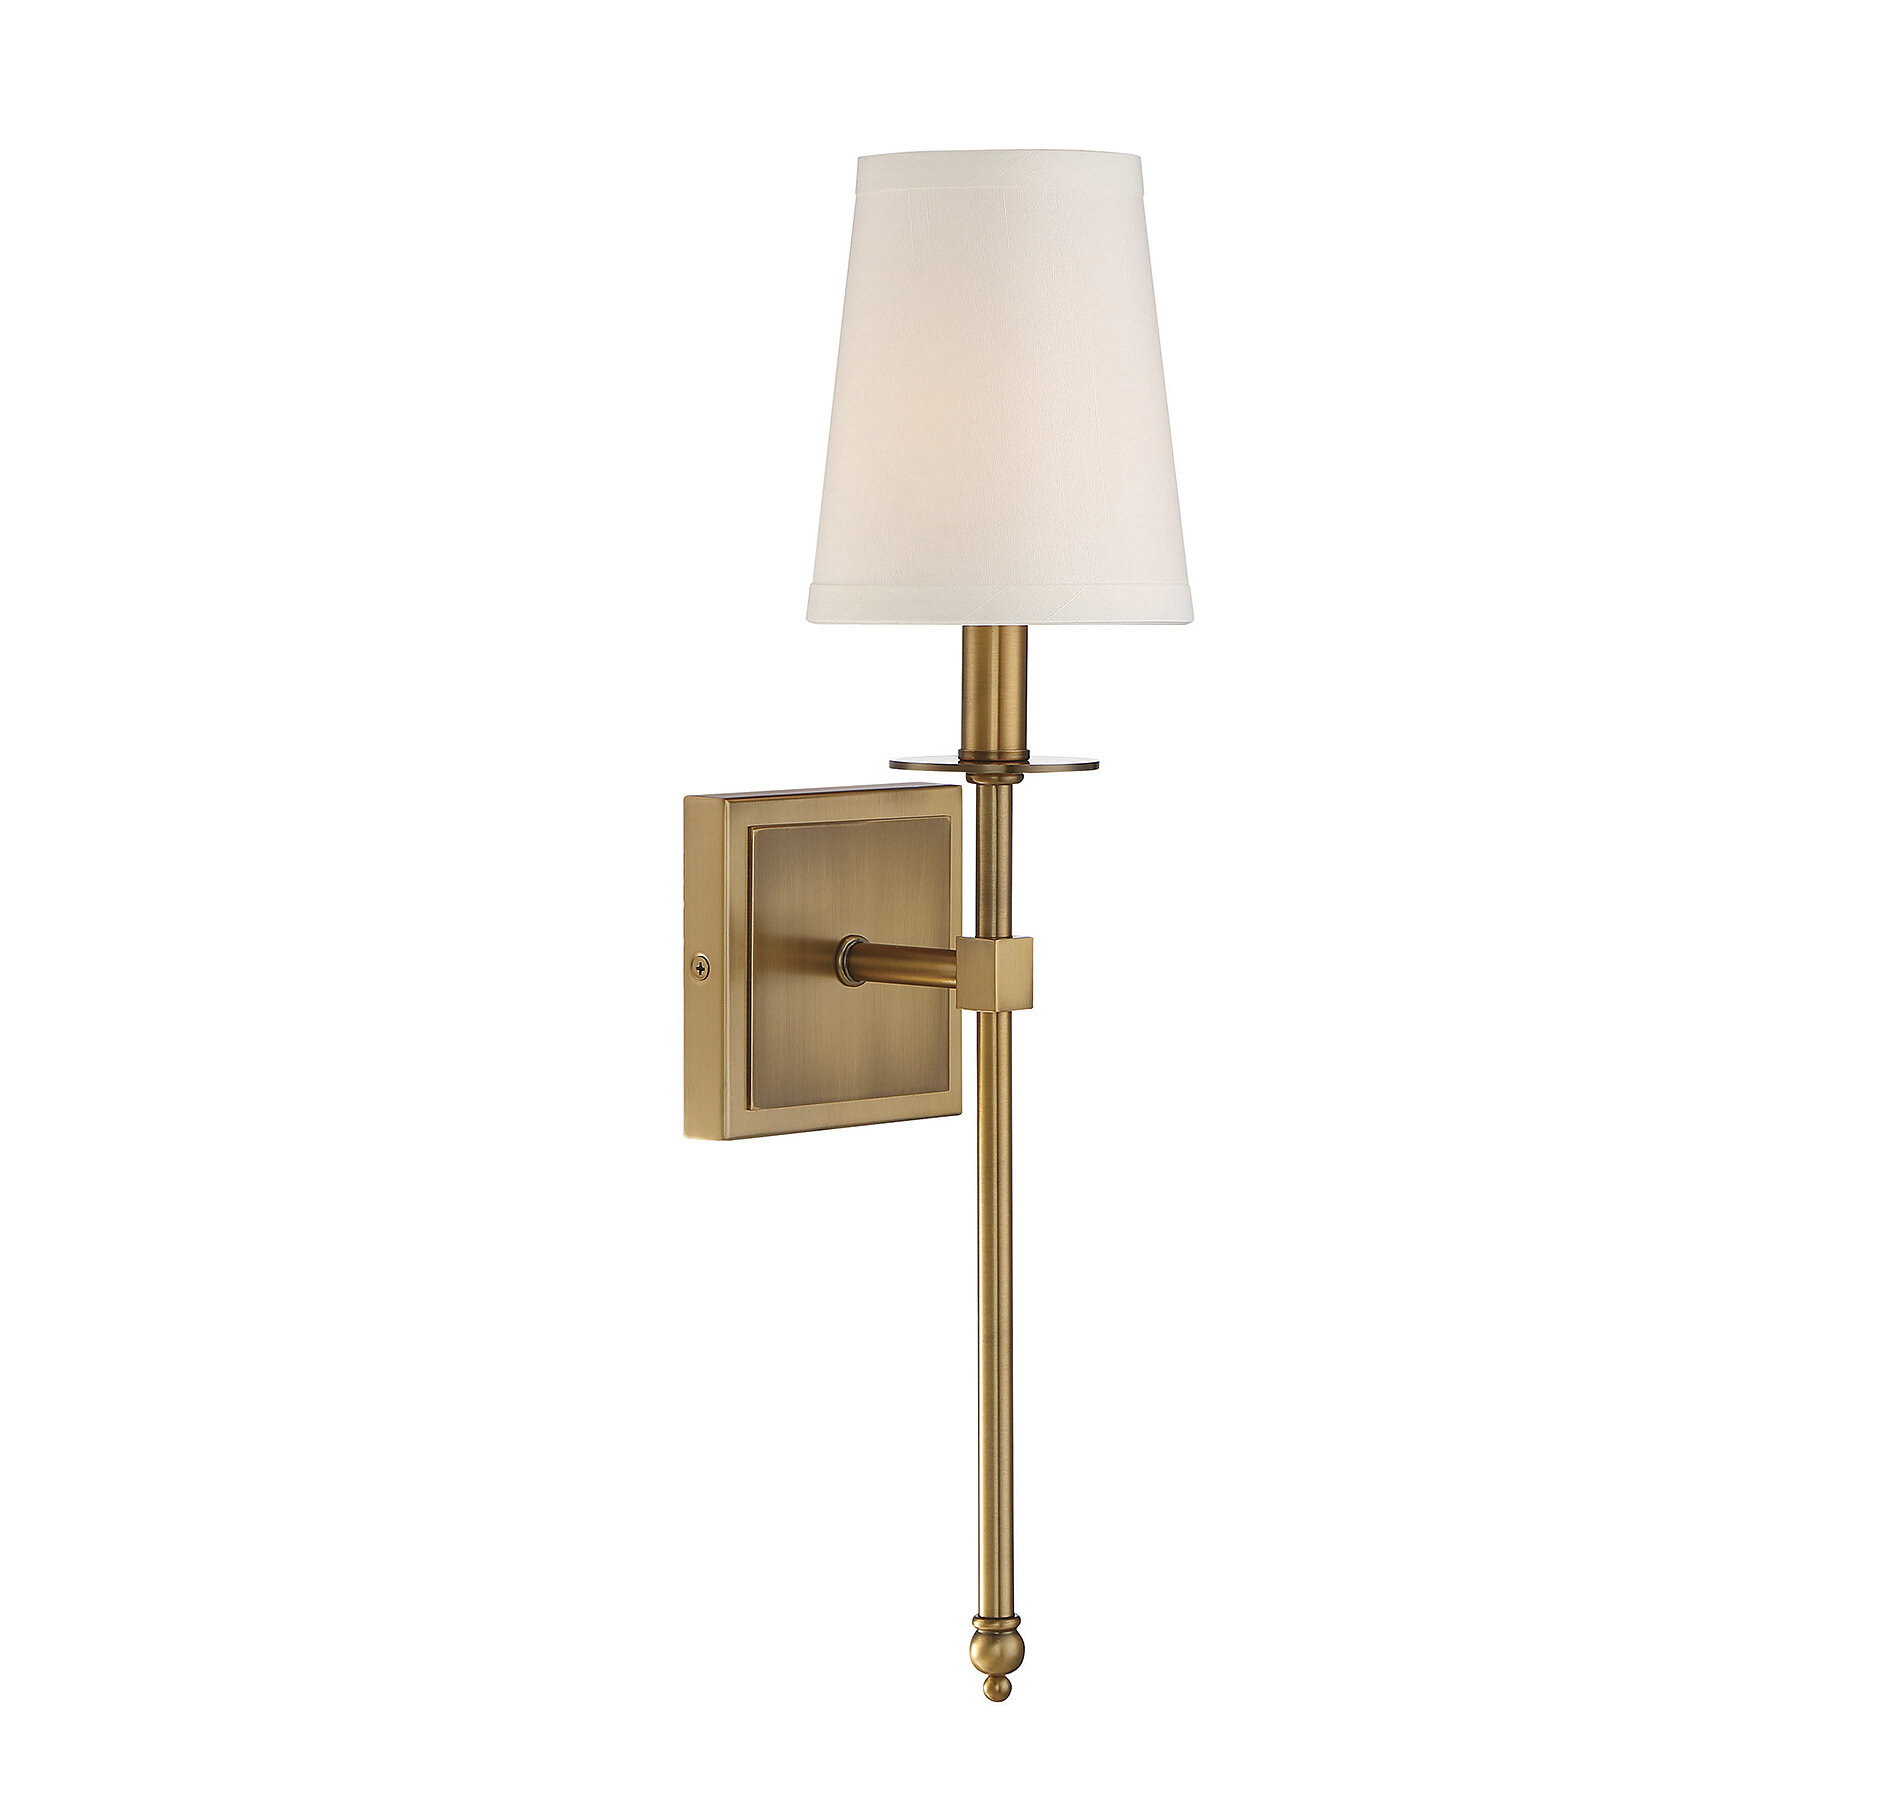 Ivory Cream Shade Wall Sconces You Ll Love In 2021 Wayfair